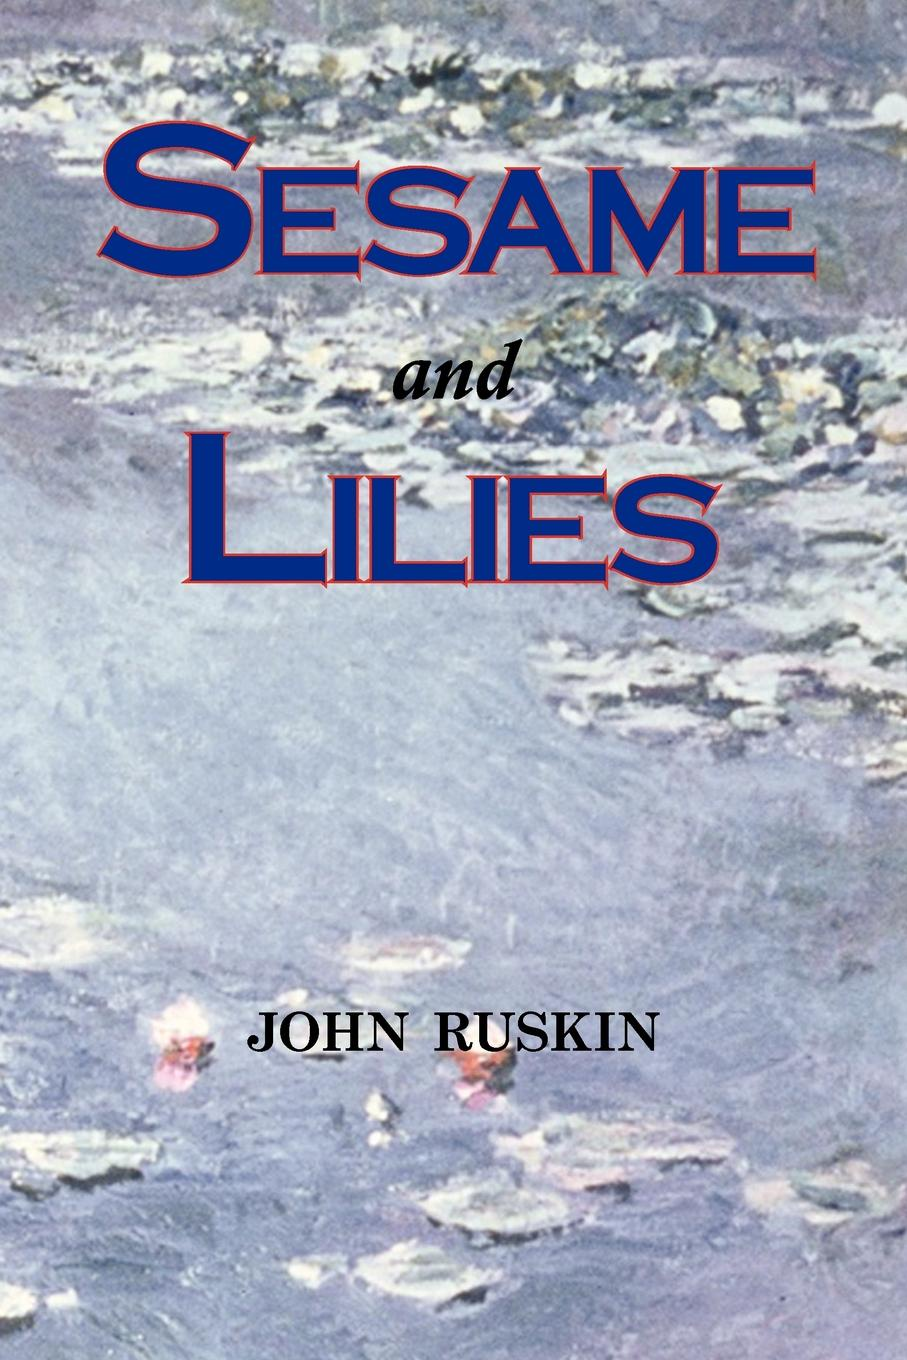 John Ruskin Sesame and Lilies (Lectures) kingsley maud elma sesame and lilies ruskin